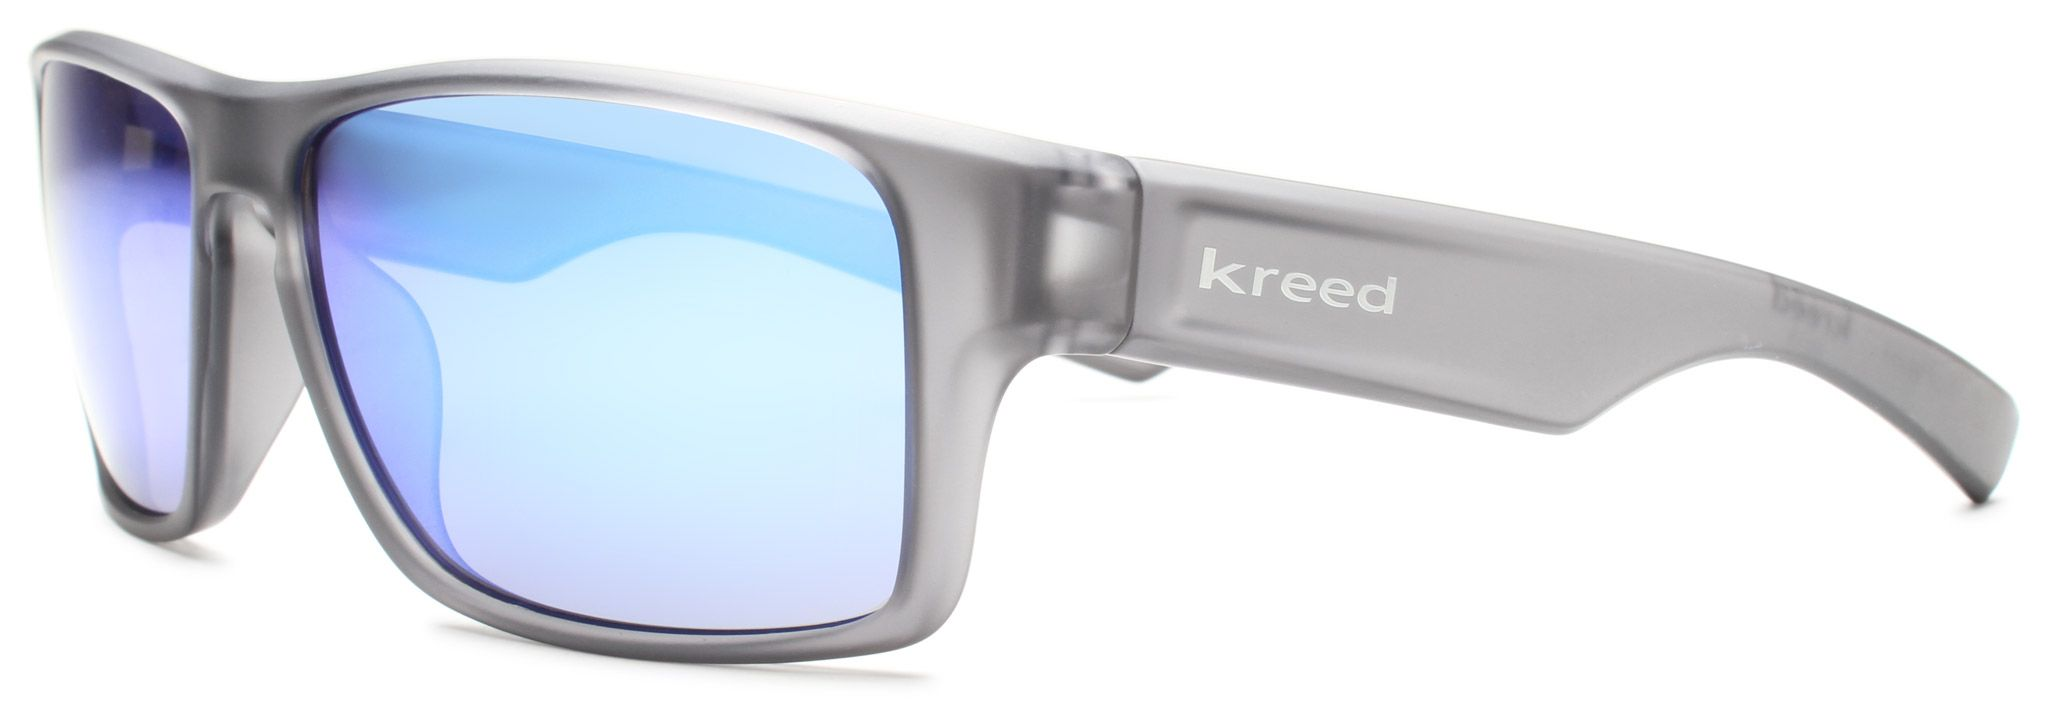 8f8c0aea4b59a Kreed Sunglasses - Incognito